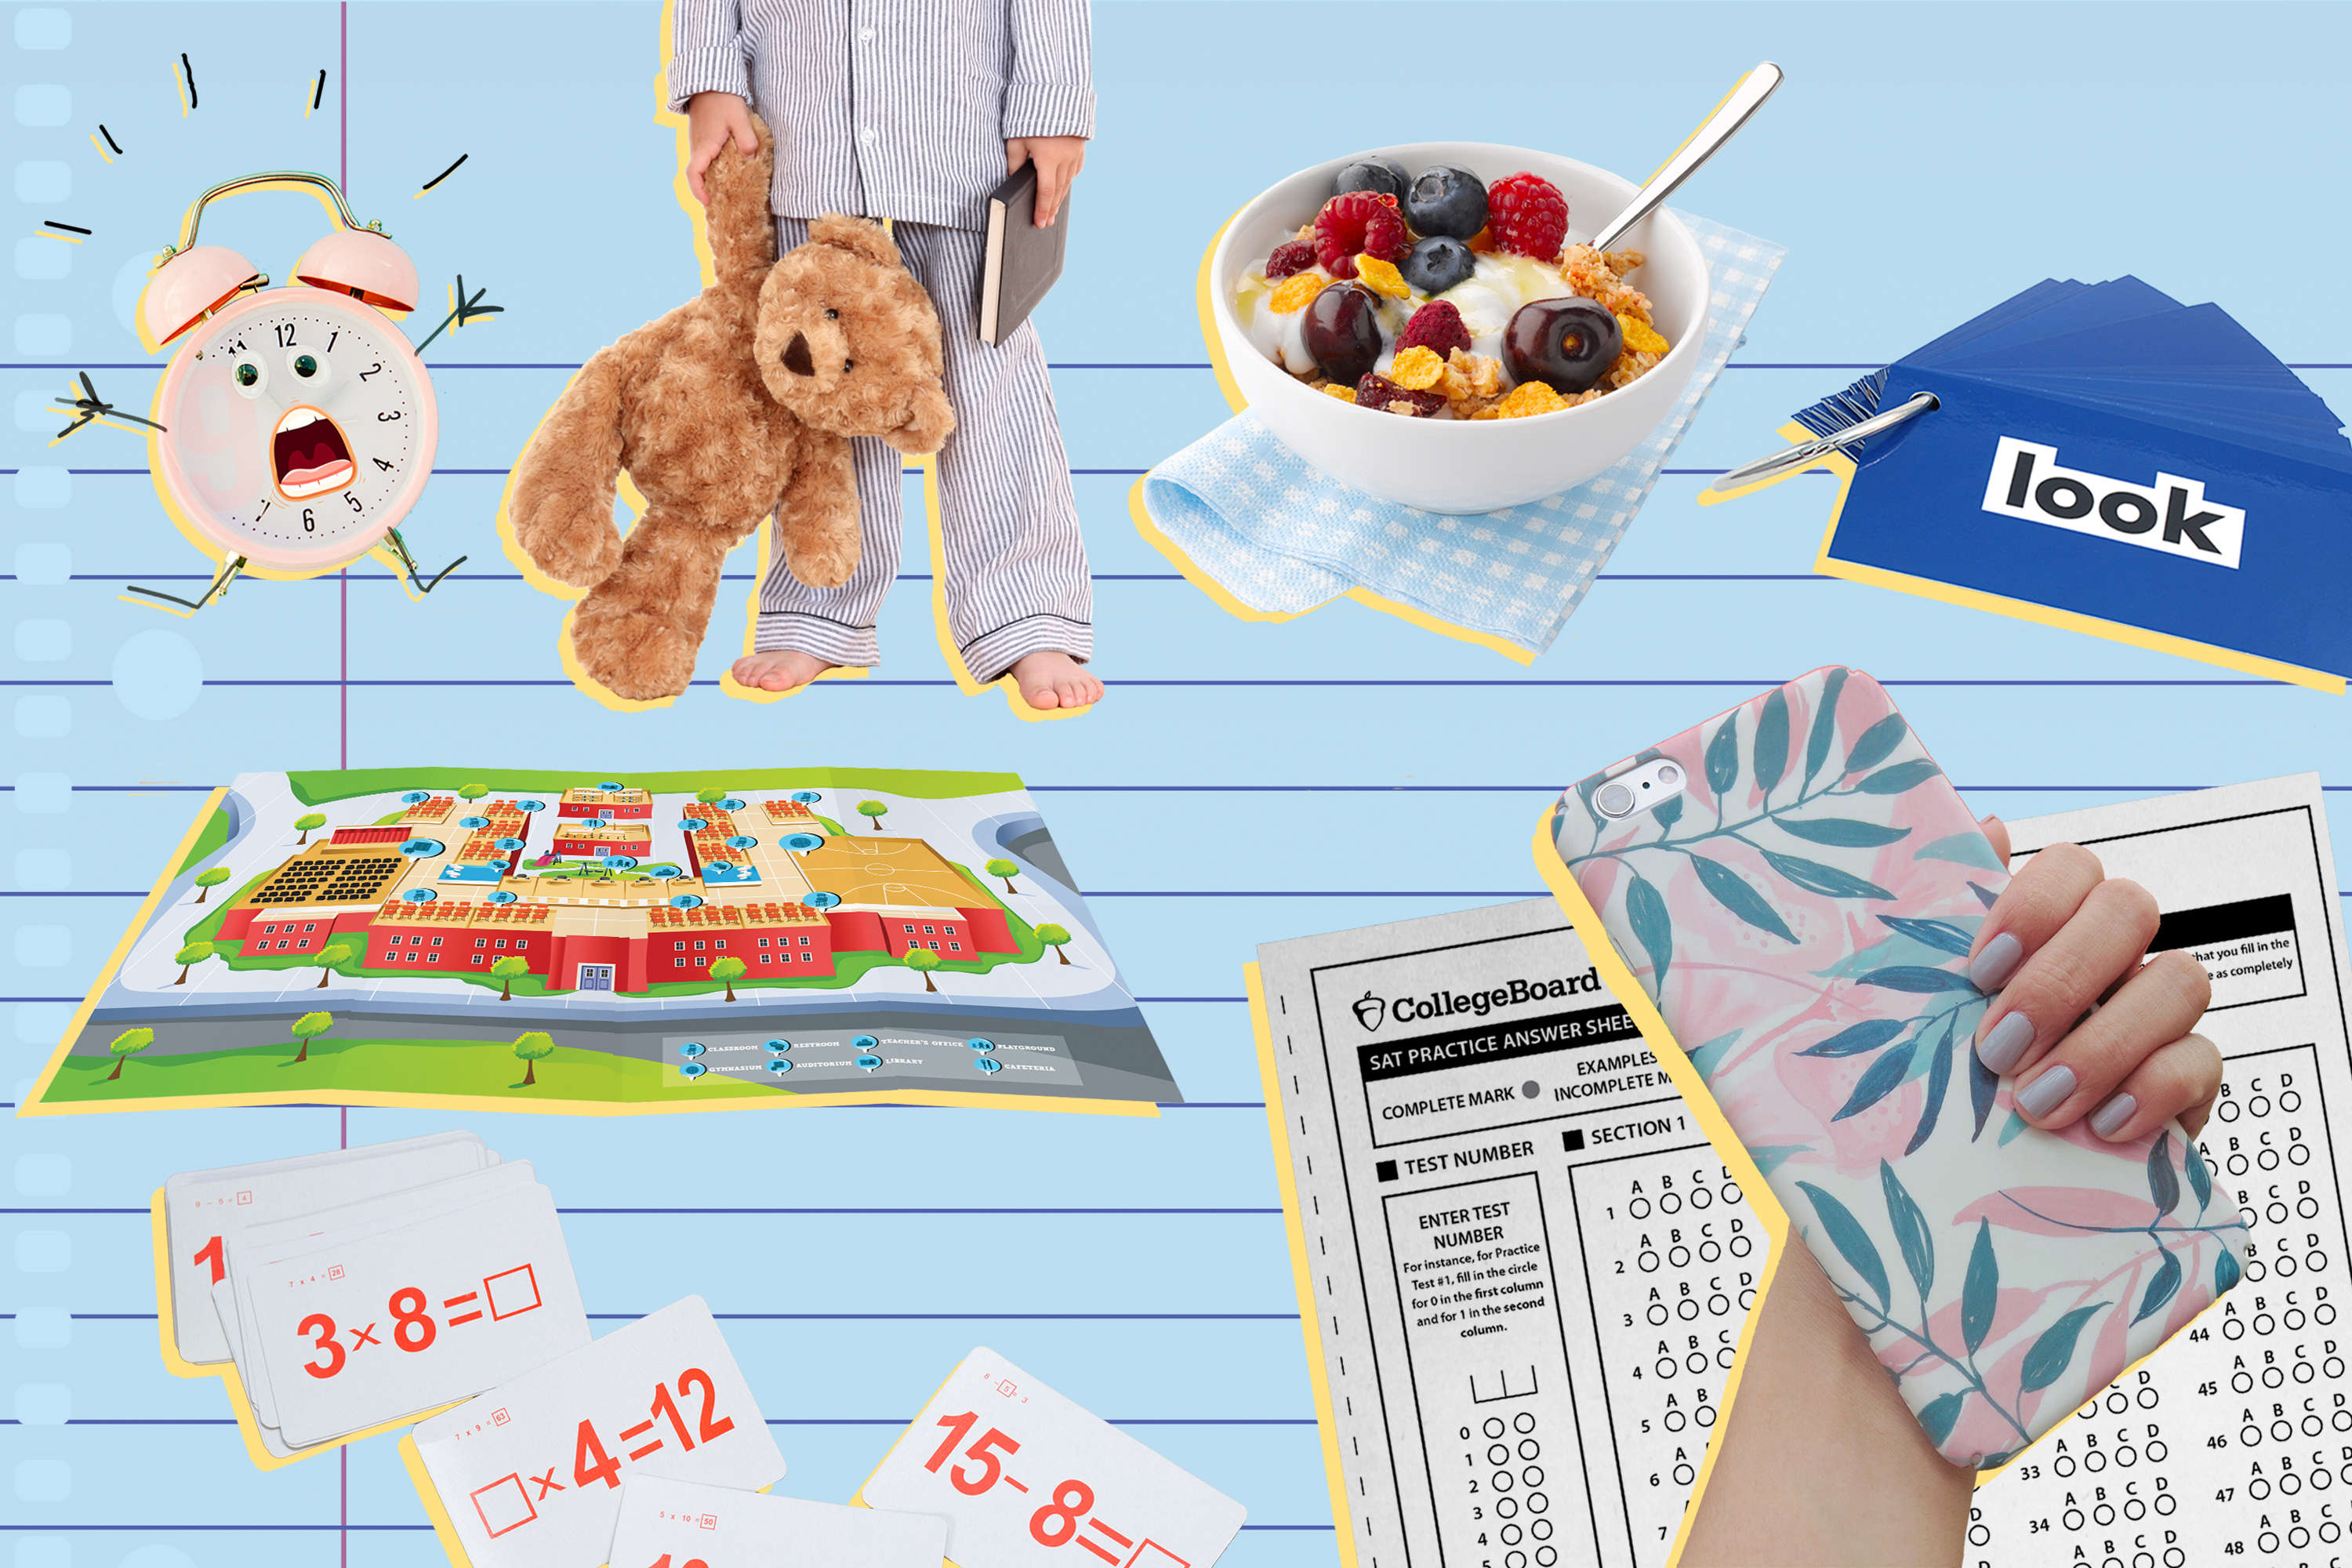 photo illustration with alarm clock, bedtime story, cereal, sight words, cell phone, map of school, flashcards and sat practice test